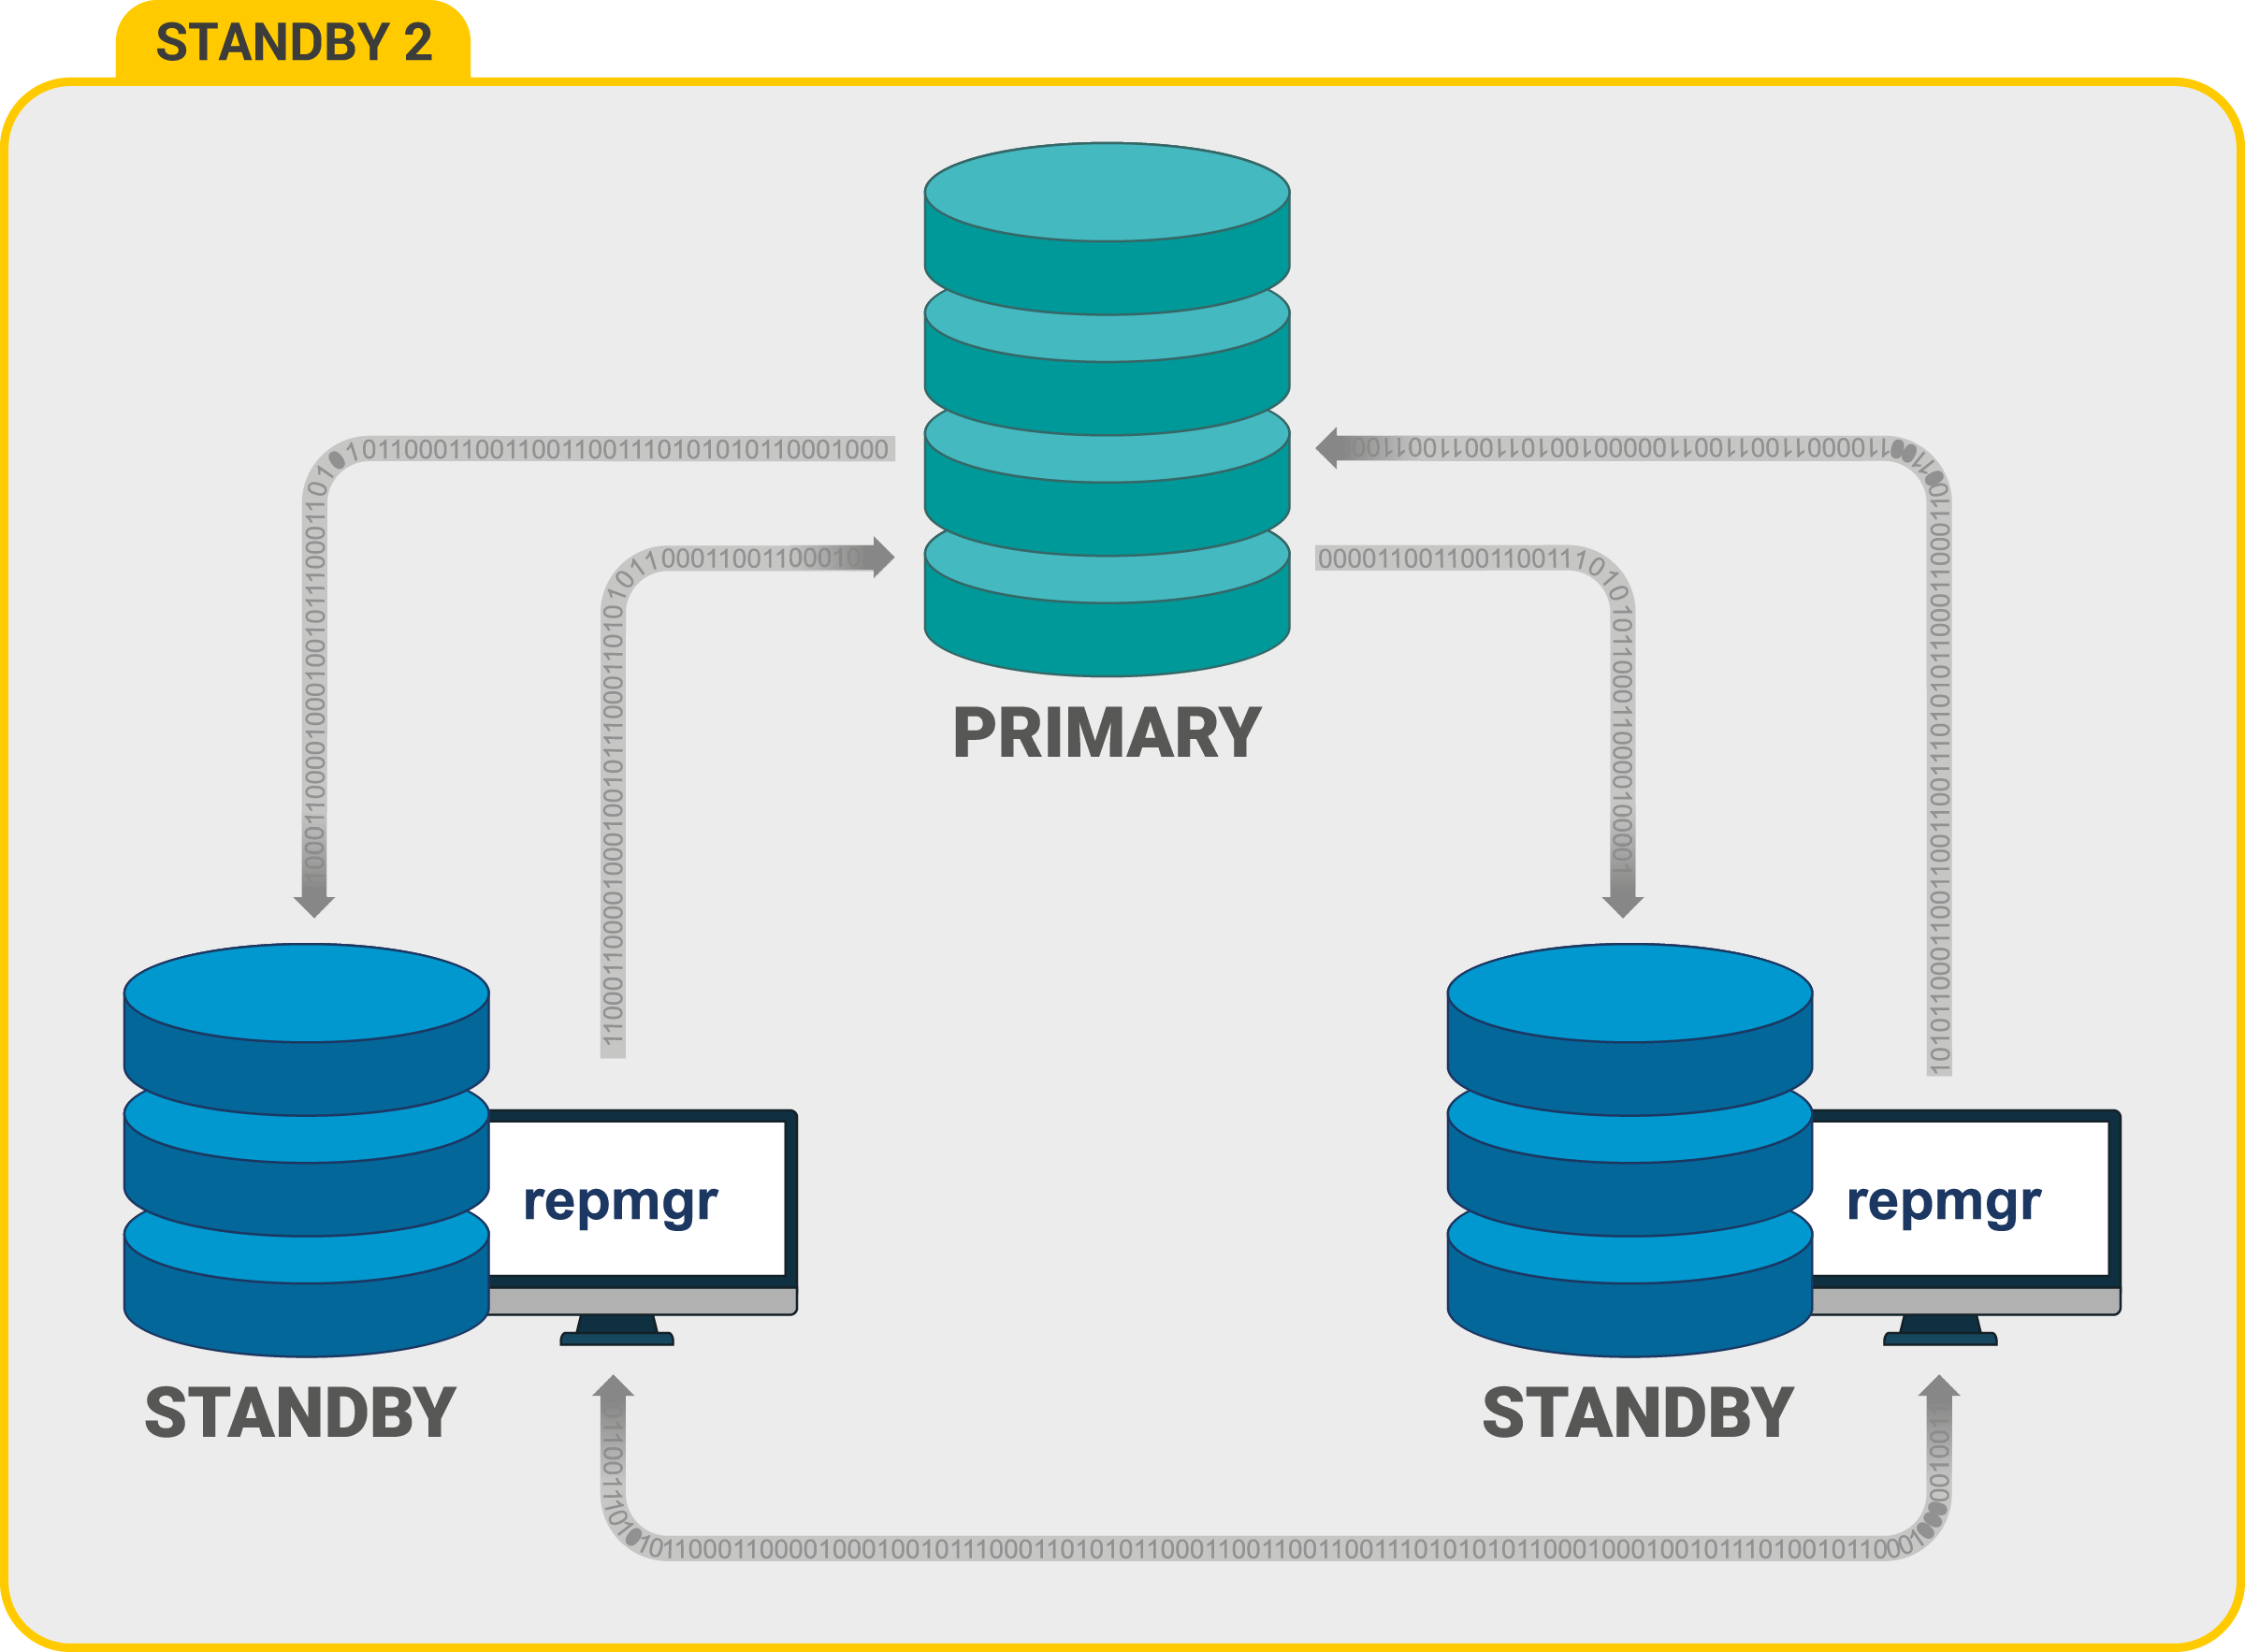 repmgr configuration using 1 Primary + 2 Standbys for production databases requiring high availability. 2 Standby nodes are configured for failover in case the Primary node fails with an additional Standby node configured for High Availability (HA).